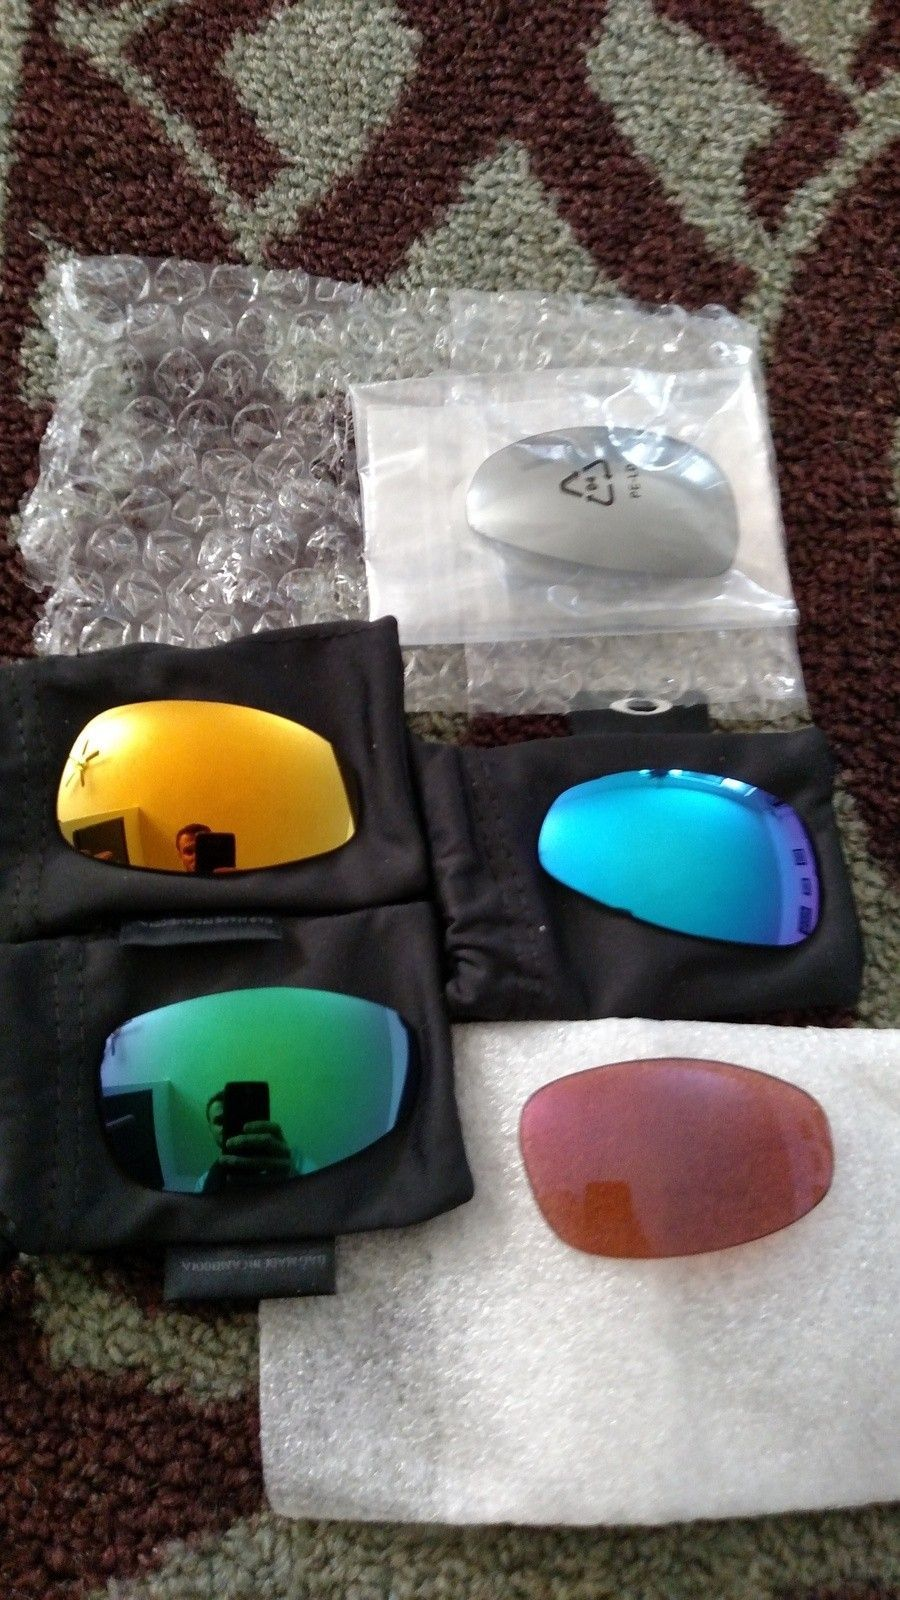 XX X METAL (Ruby & Violet Iridium) custom cut lenses. - 1450650458709512888576.jpg